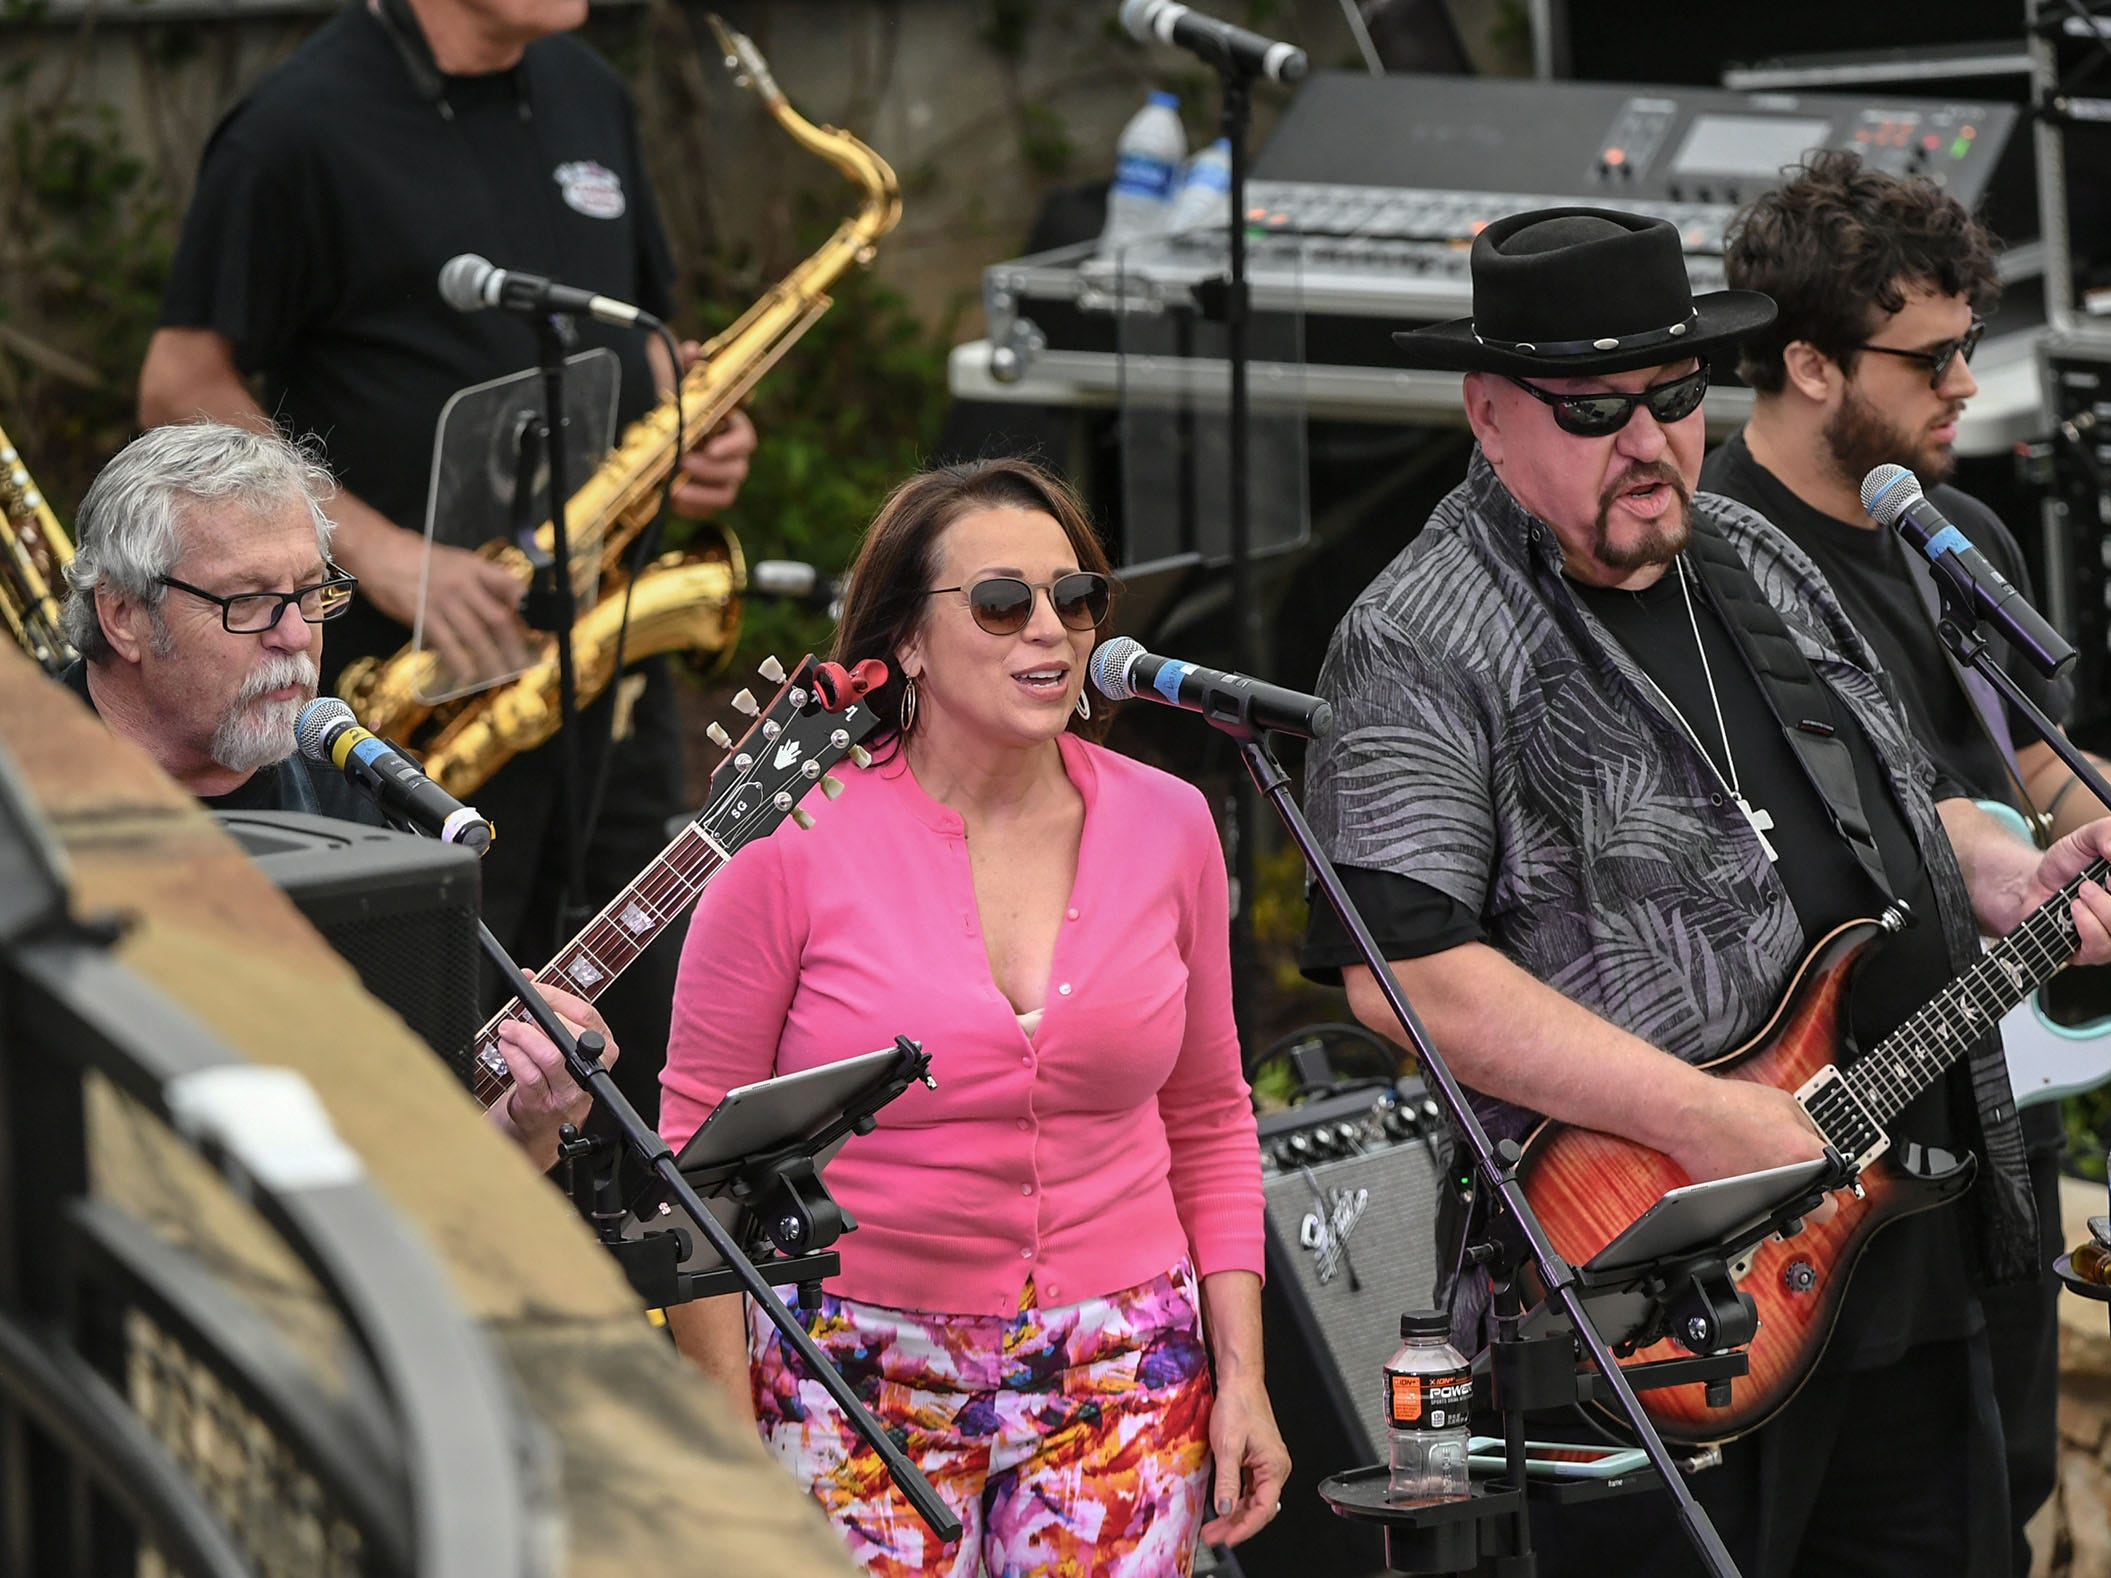 The Combo Kings played music, people danced, and Foothills Alliance had a walk for men in high heels to bring awareness to National Sexual Assault Awareness Month during the Main Street Program Block Party at Carolina Wren Park in downtown Anderson Thursday.